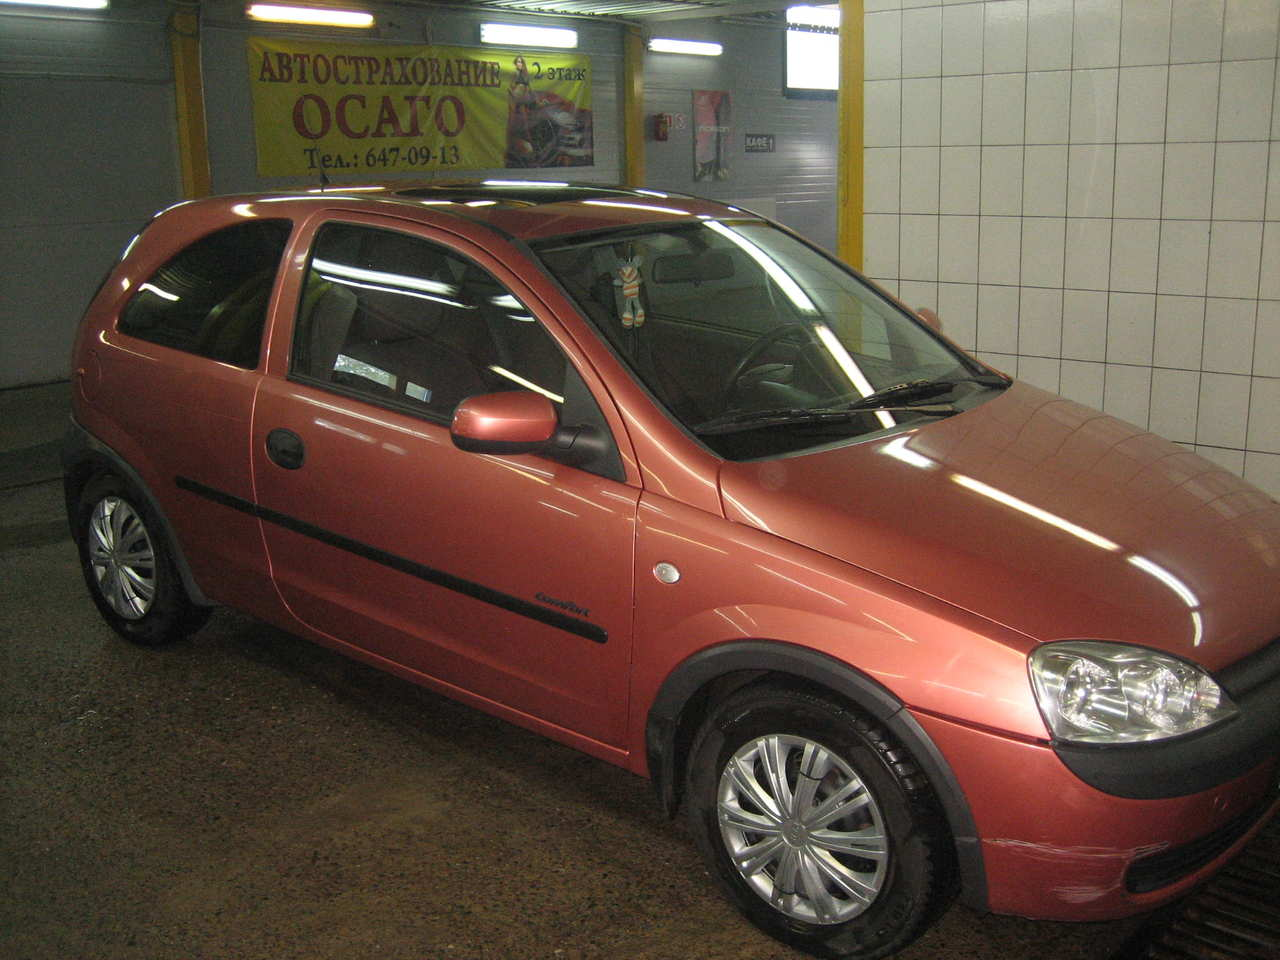 used 2001 opel corsa photos 973cc gasoline ff manual for sale. Black Bedroom Furniture Sets. Home Design Ideas